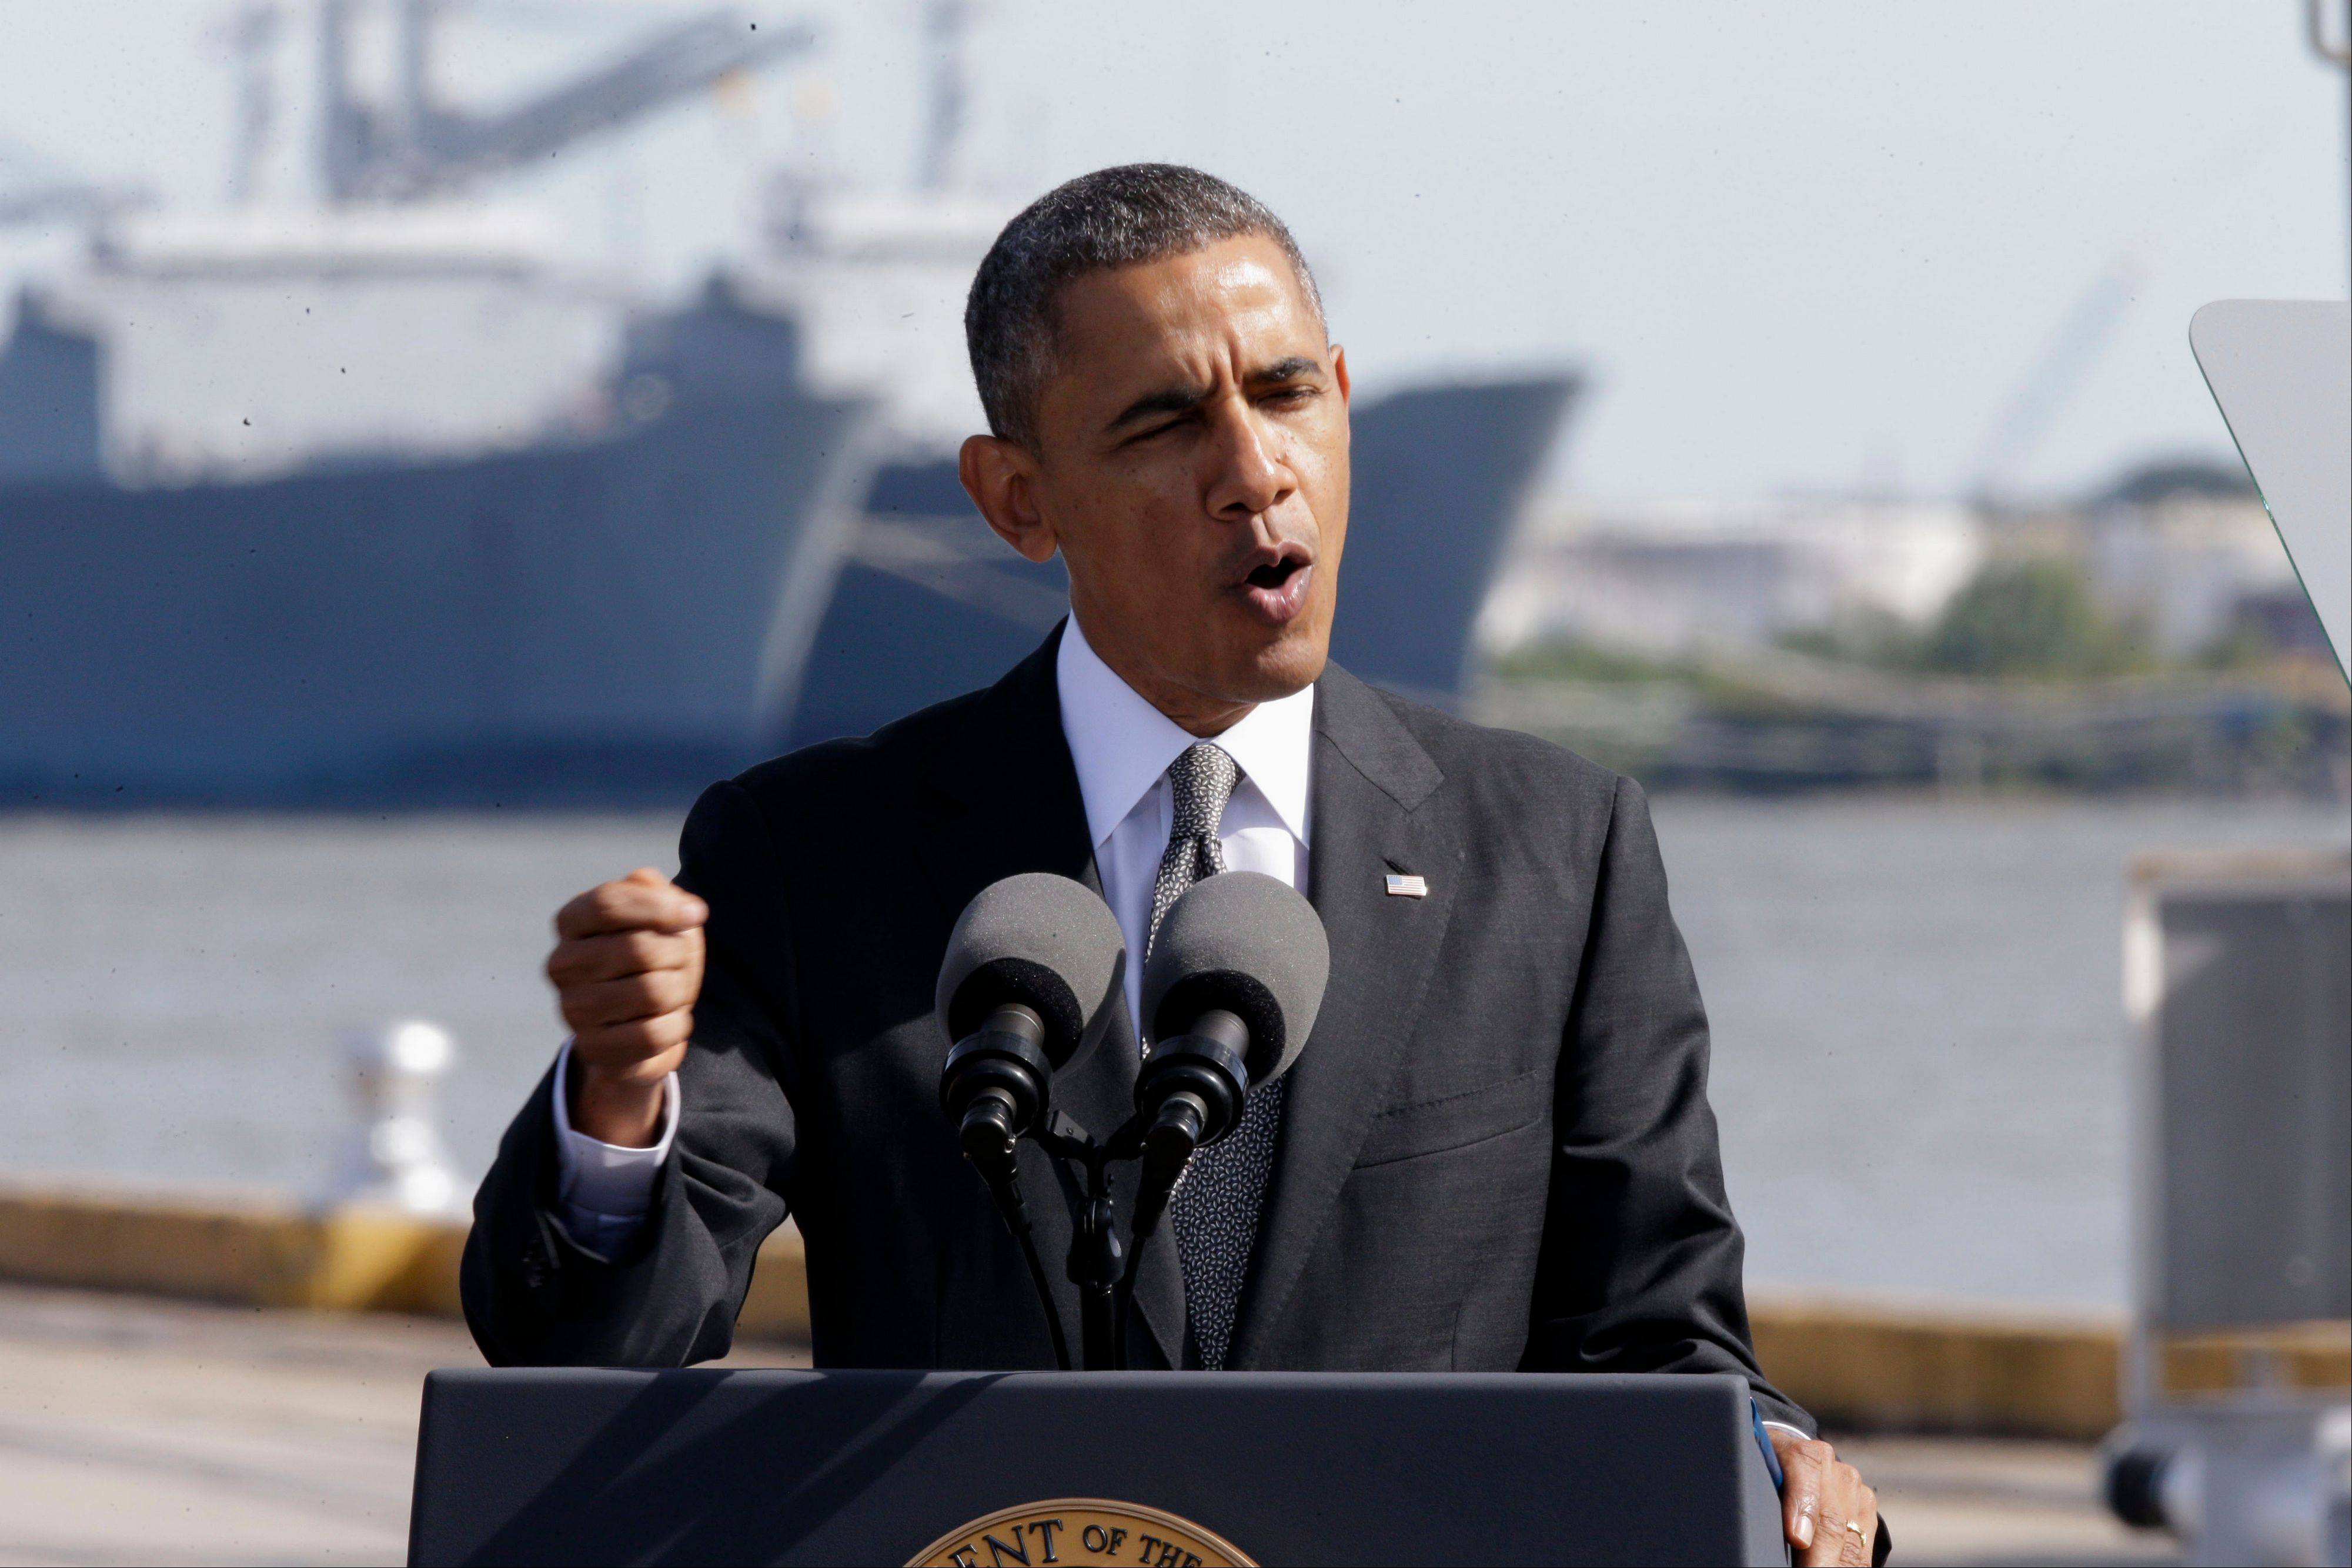 President Barack Obama speaks Friday about the economy at the Port of New Orleans. The president says he'll do everything he can to help people coping with health insurance cancellations, but legally and practically his options appear limited.